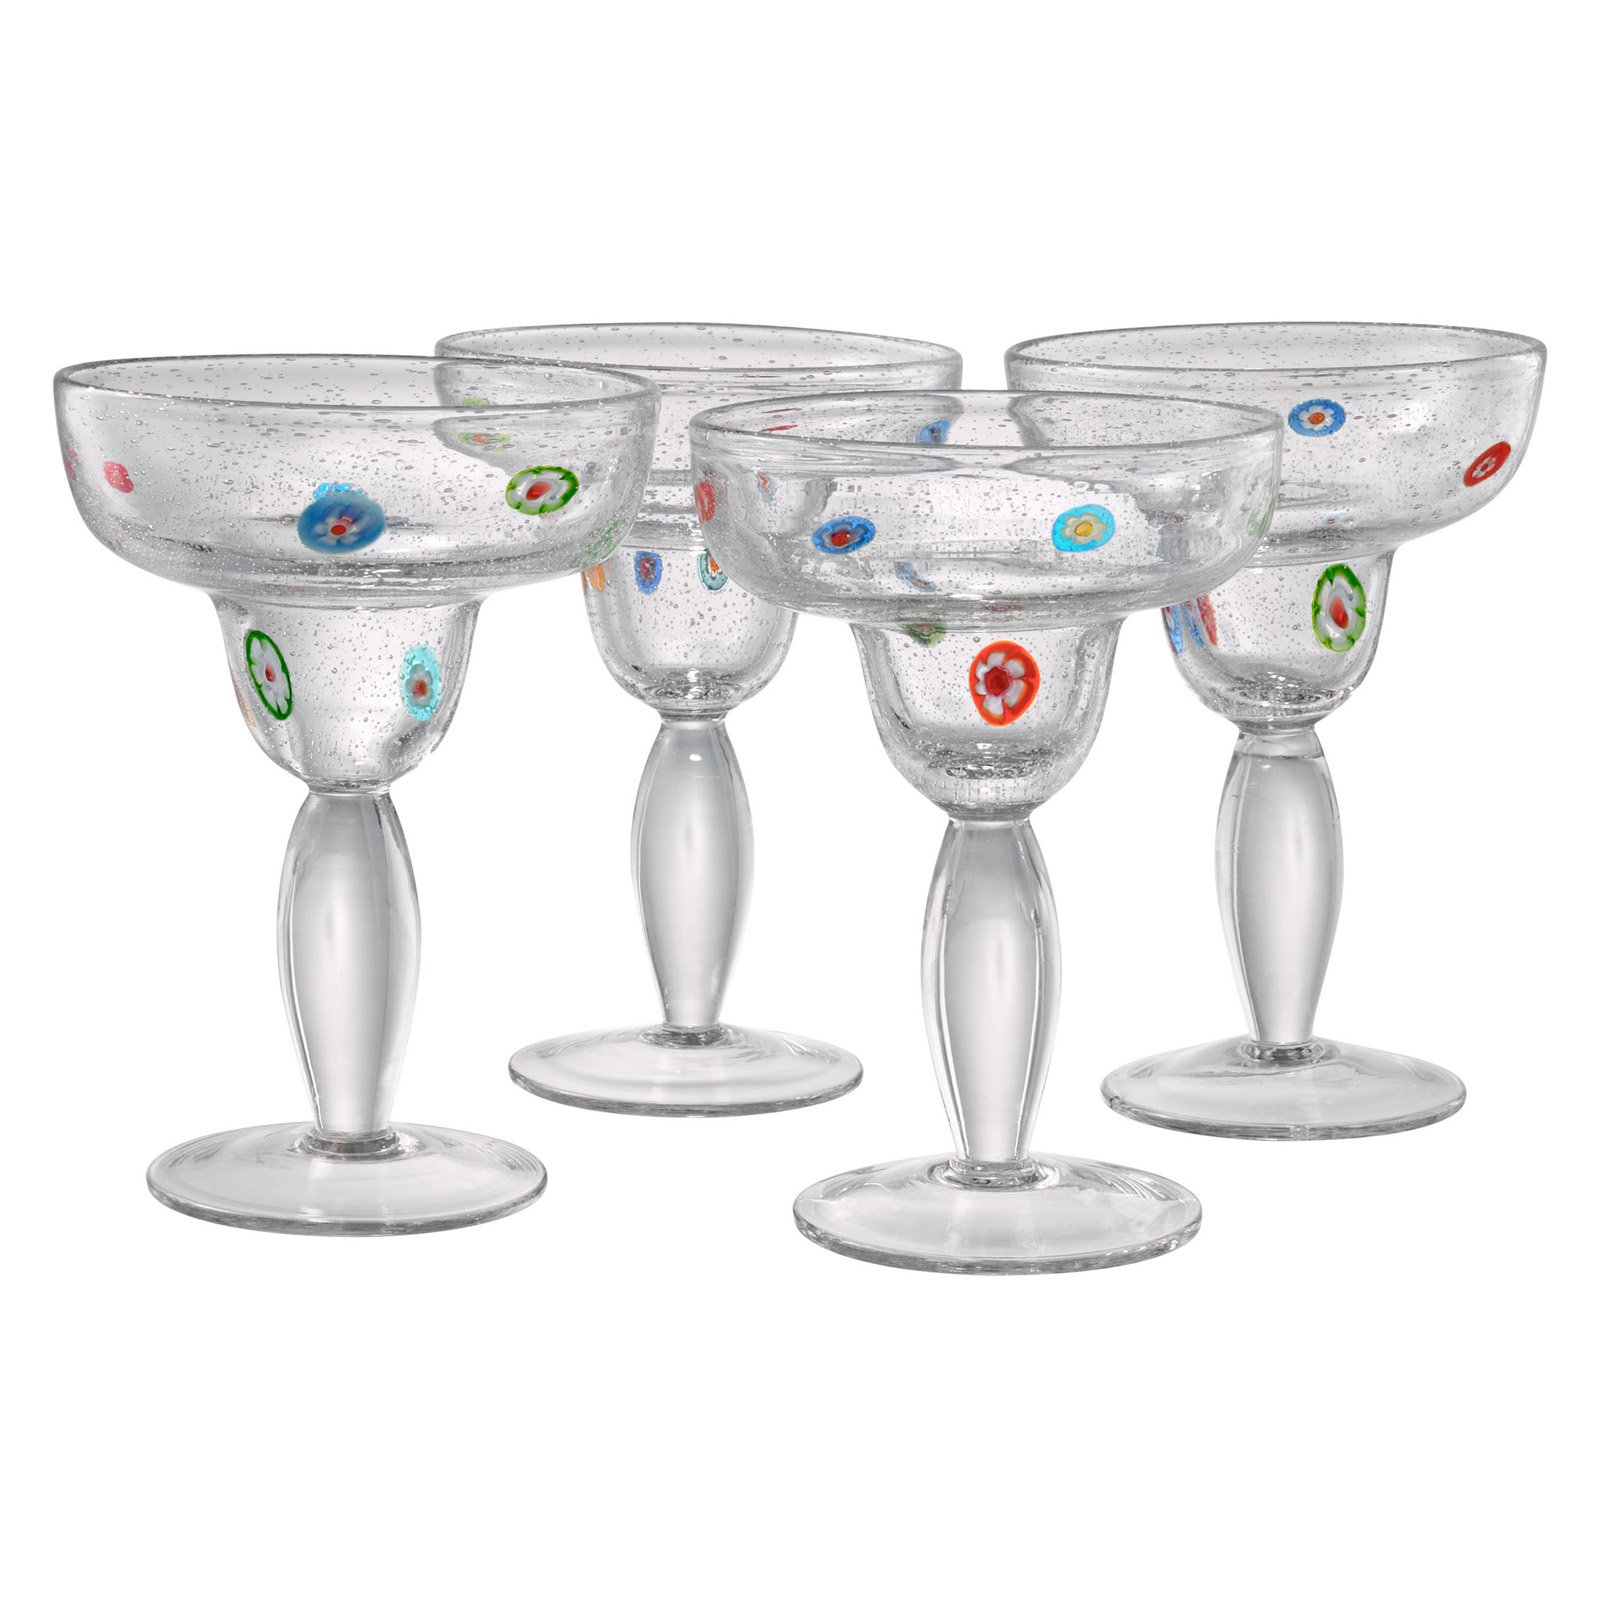 Artland Inc. Fiore Margarita Glasses - Set of 4